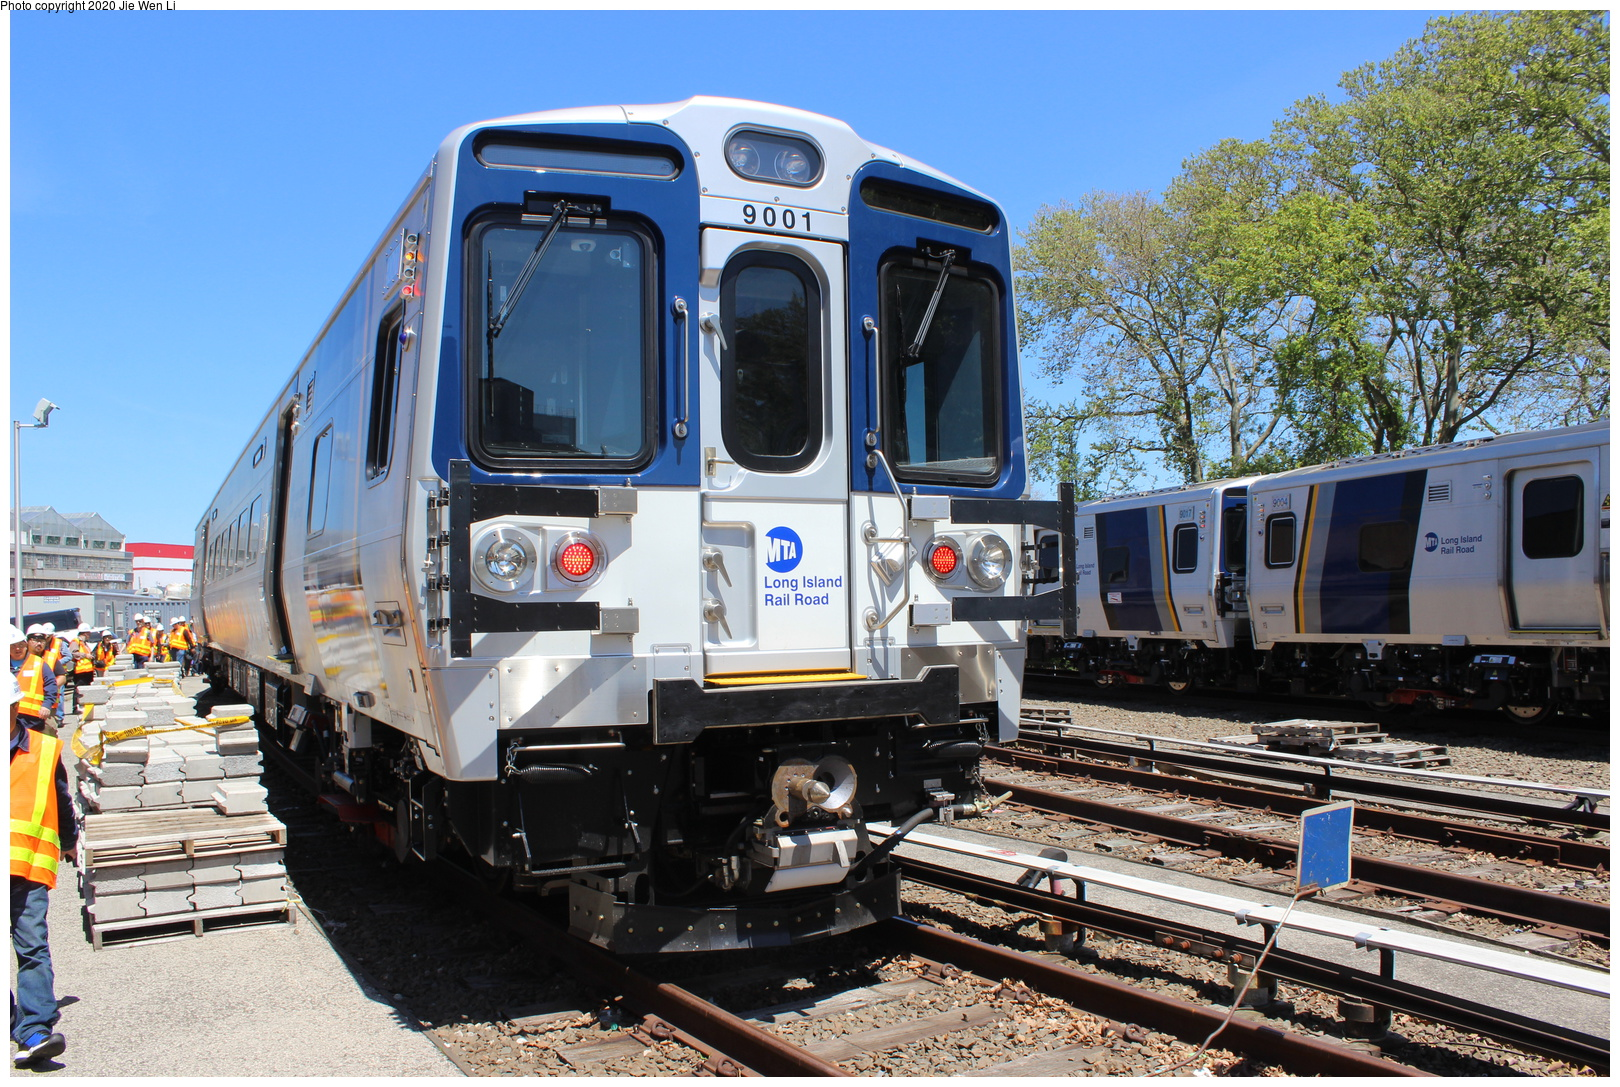 (267k, 1044x988)<br><b>Country:</b> United States<br><b>City:</b> New York<br><b>System:</b> New York City Transit<br><b>Line:</b> 9th Avenue El<br><b>Location:</b> 155th Street <br><b>Car:</b> Low-V 4215 <br><b>Photo by:</b> Joel Shanus<br><b>Viewed (this week/total):</b> 3 / 1687